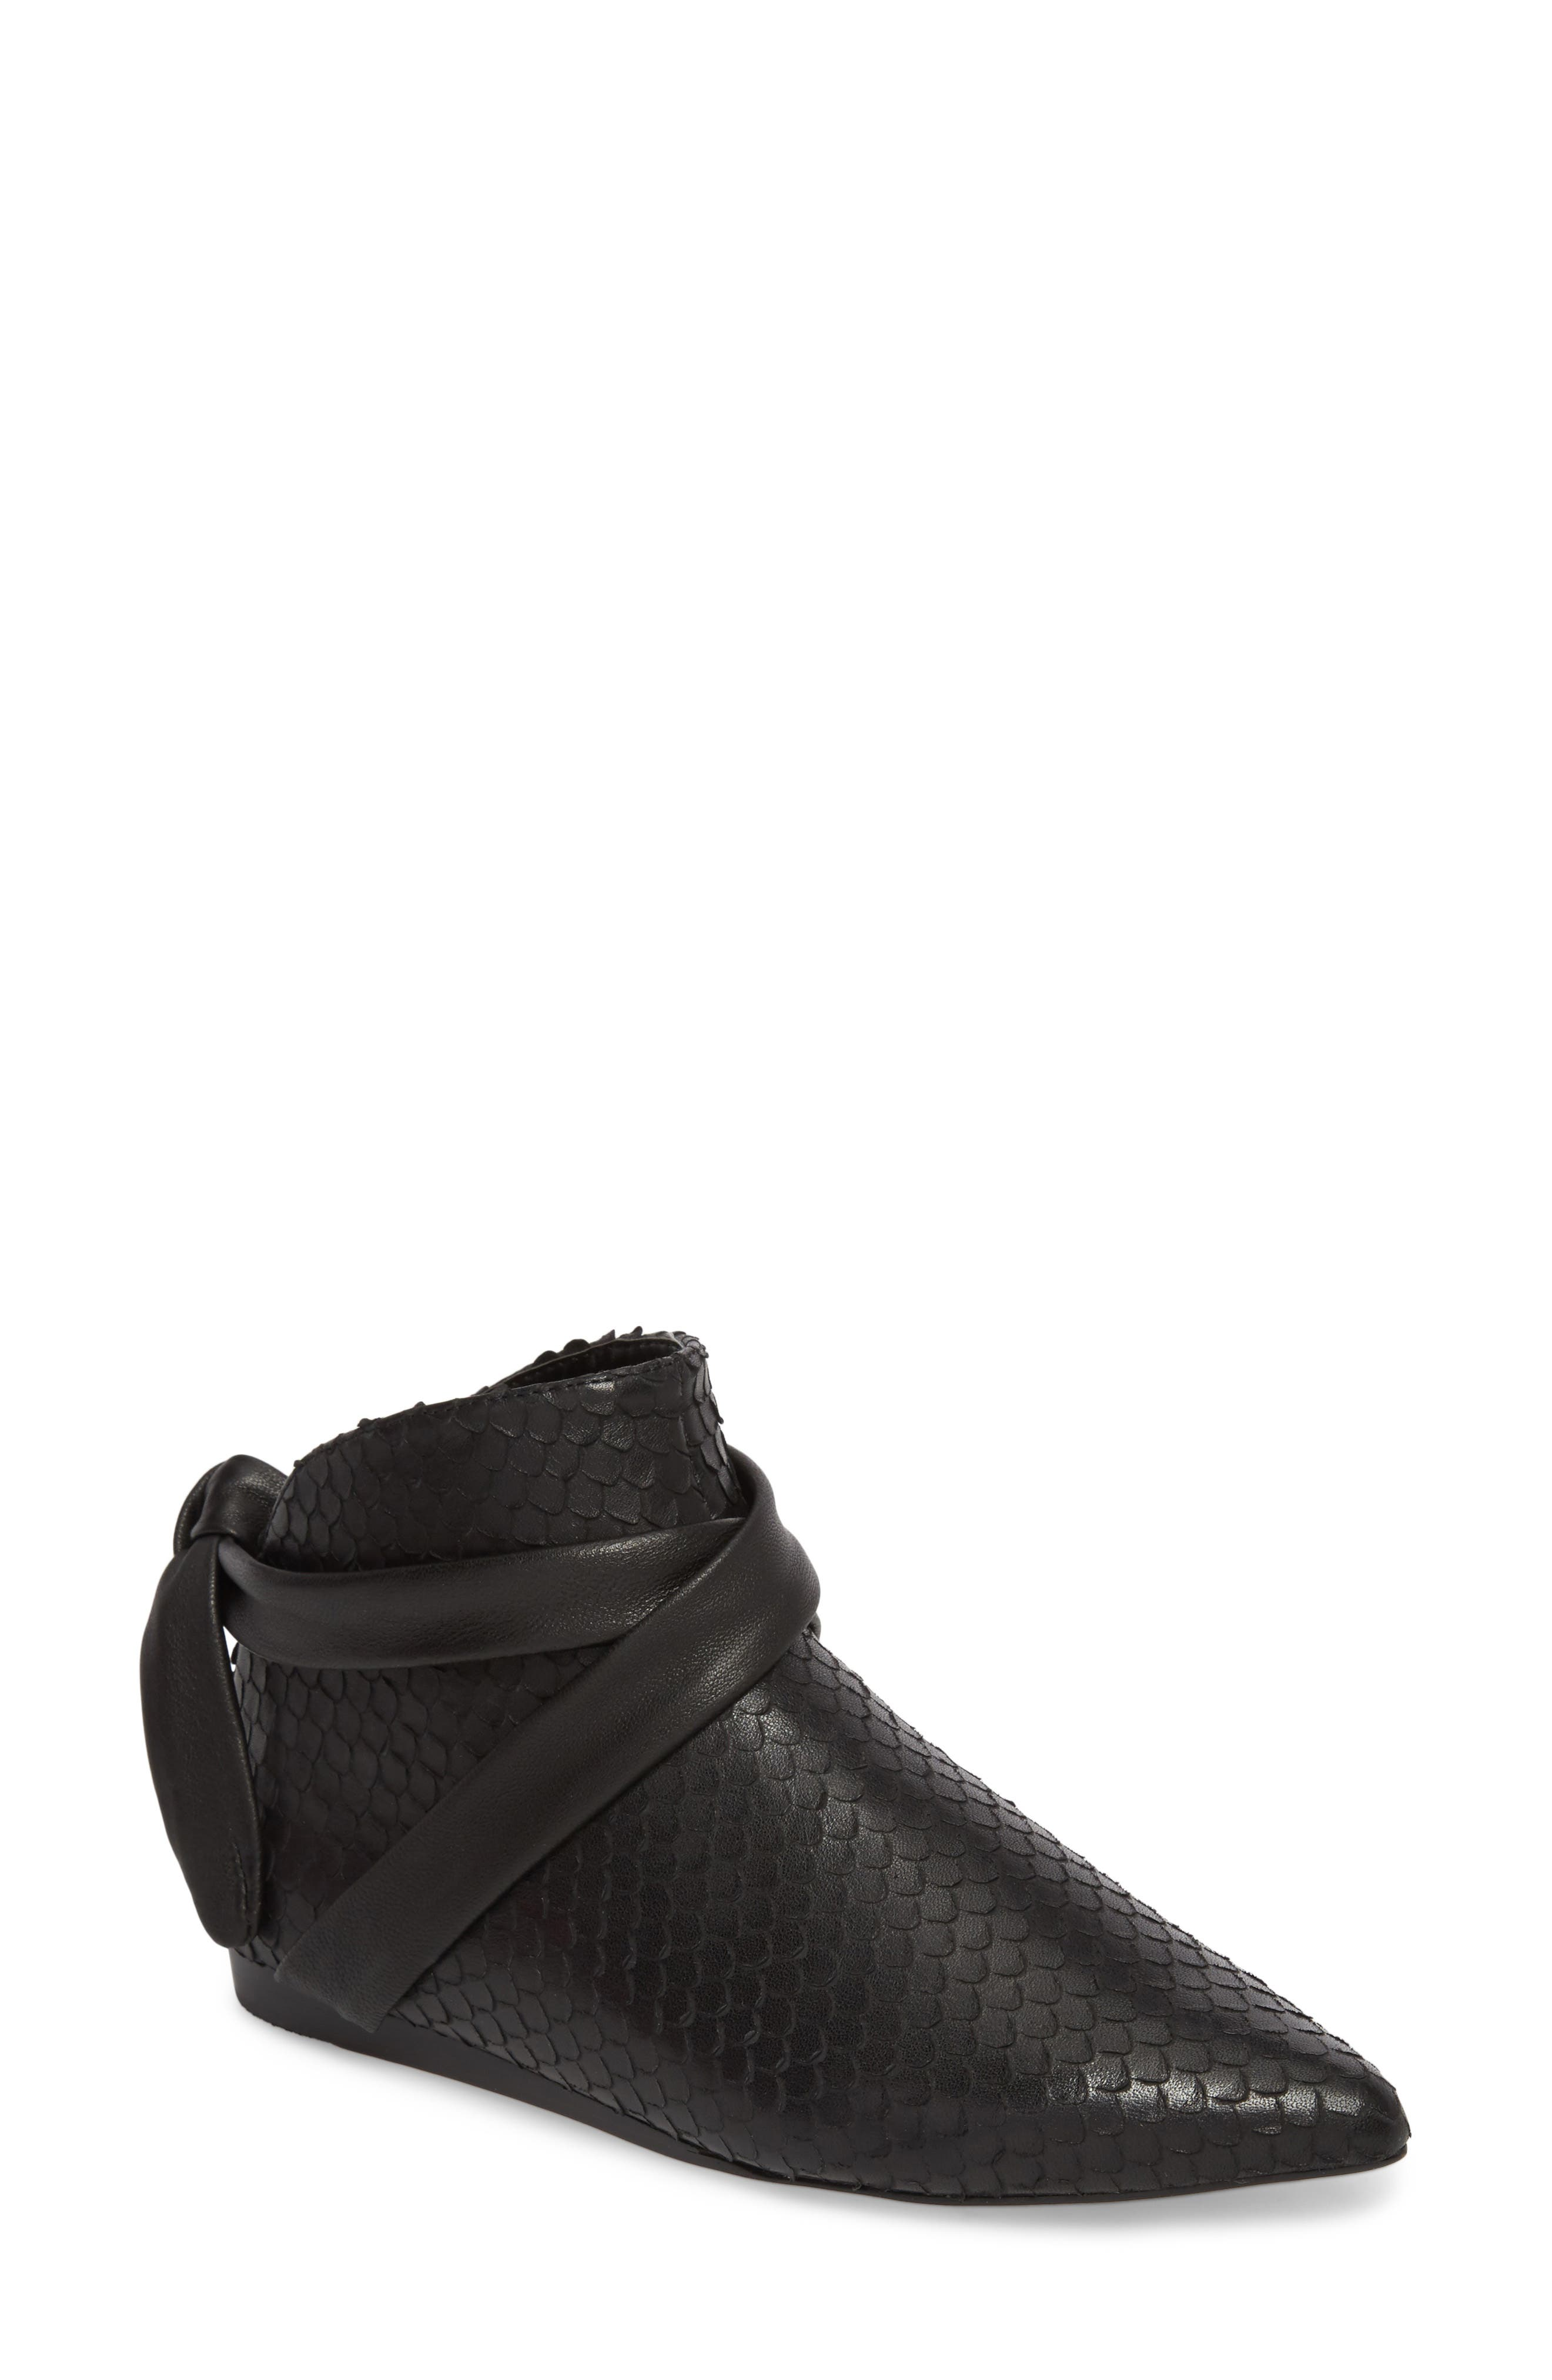 M4D3 Derby Bootie,                             Main thumbnail 1, color,                             Black Leather